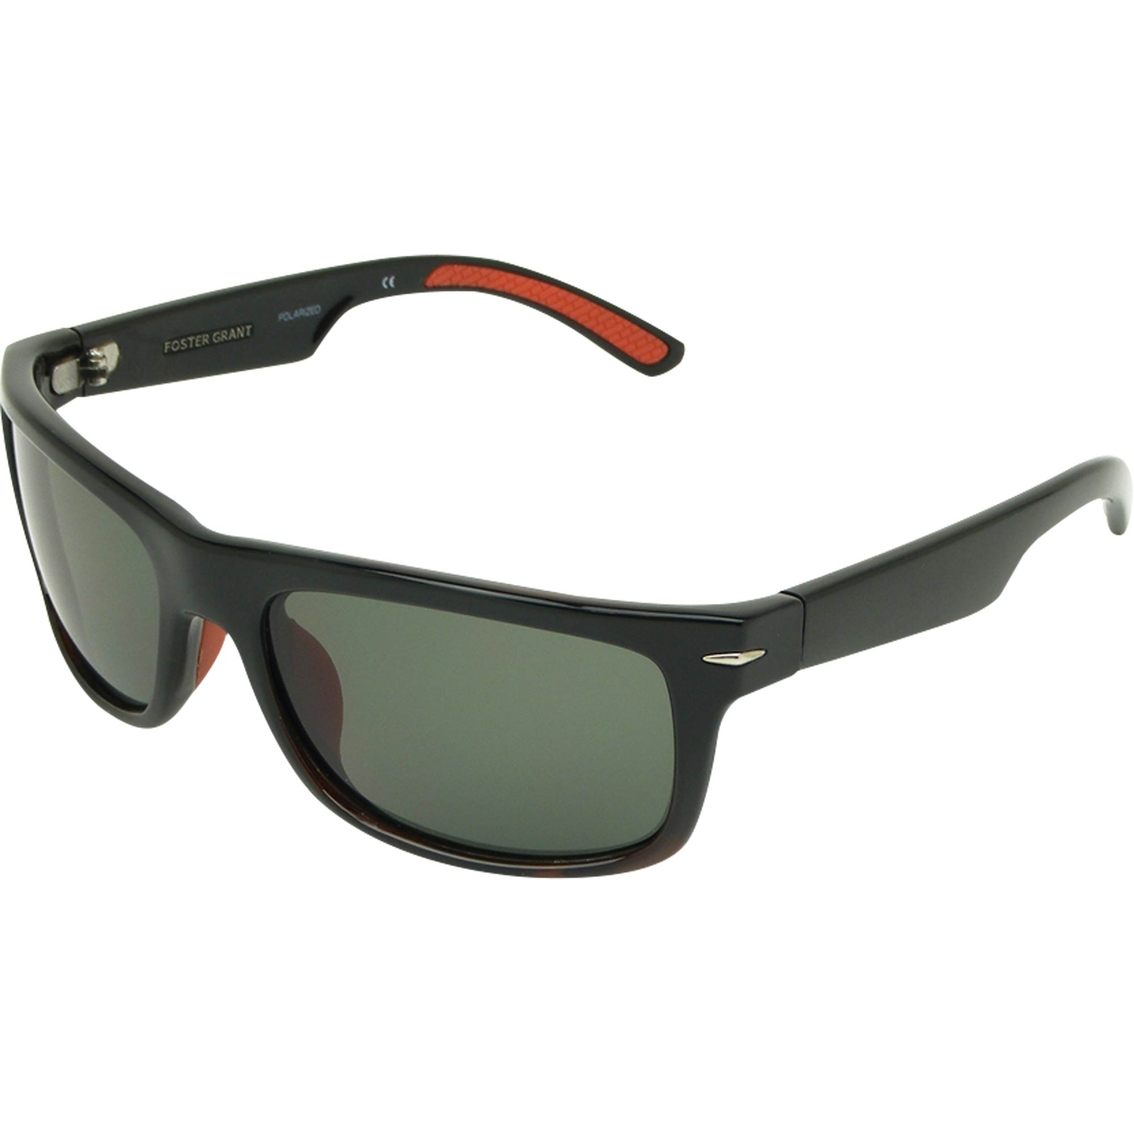 Polarized Vs Grant Sunglasses  foster grant polarized beacon polarized sunglasses 10213116 fgx